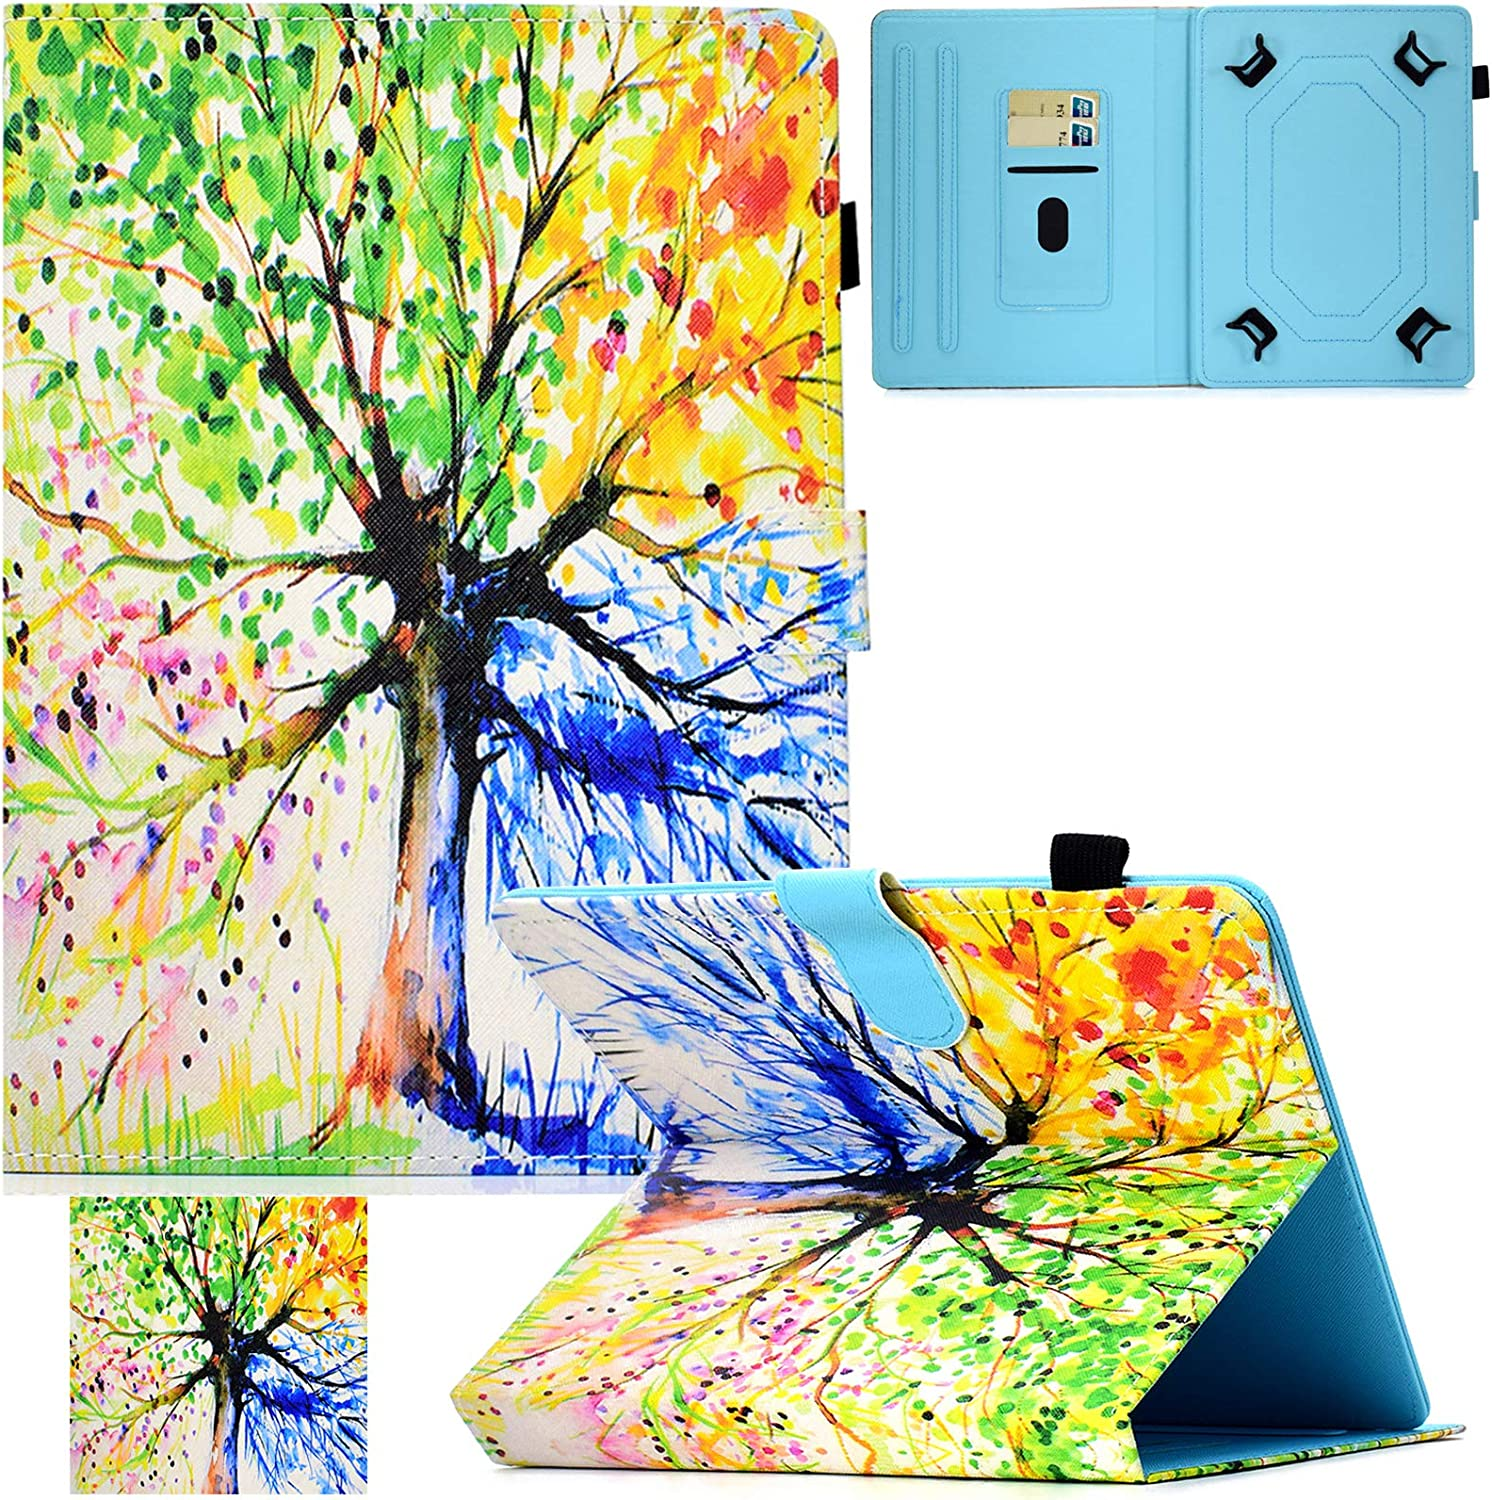 Artyond Universal 10.0 Tablet Case, PU Leather Folio Stand Card Slot Case for iPad 9.7 2018 2017/ iPad Air 1 2/ Galaxy Tab A 10.1/ Tab E 9.6/ Fire HD 10/ and More 9.0-10.5 inch Tablet (Colorful)